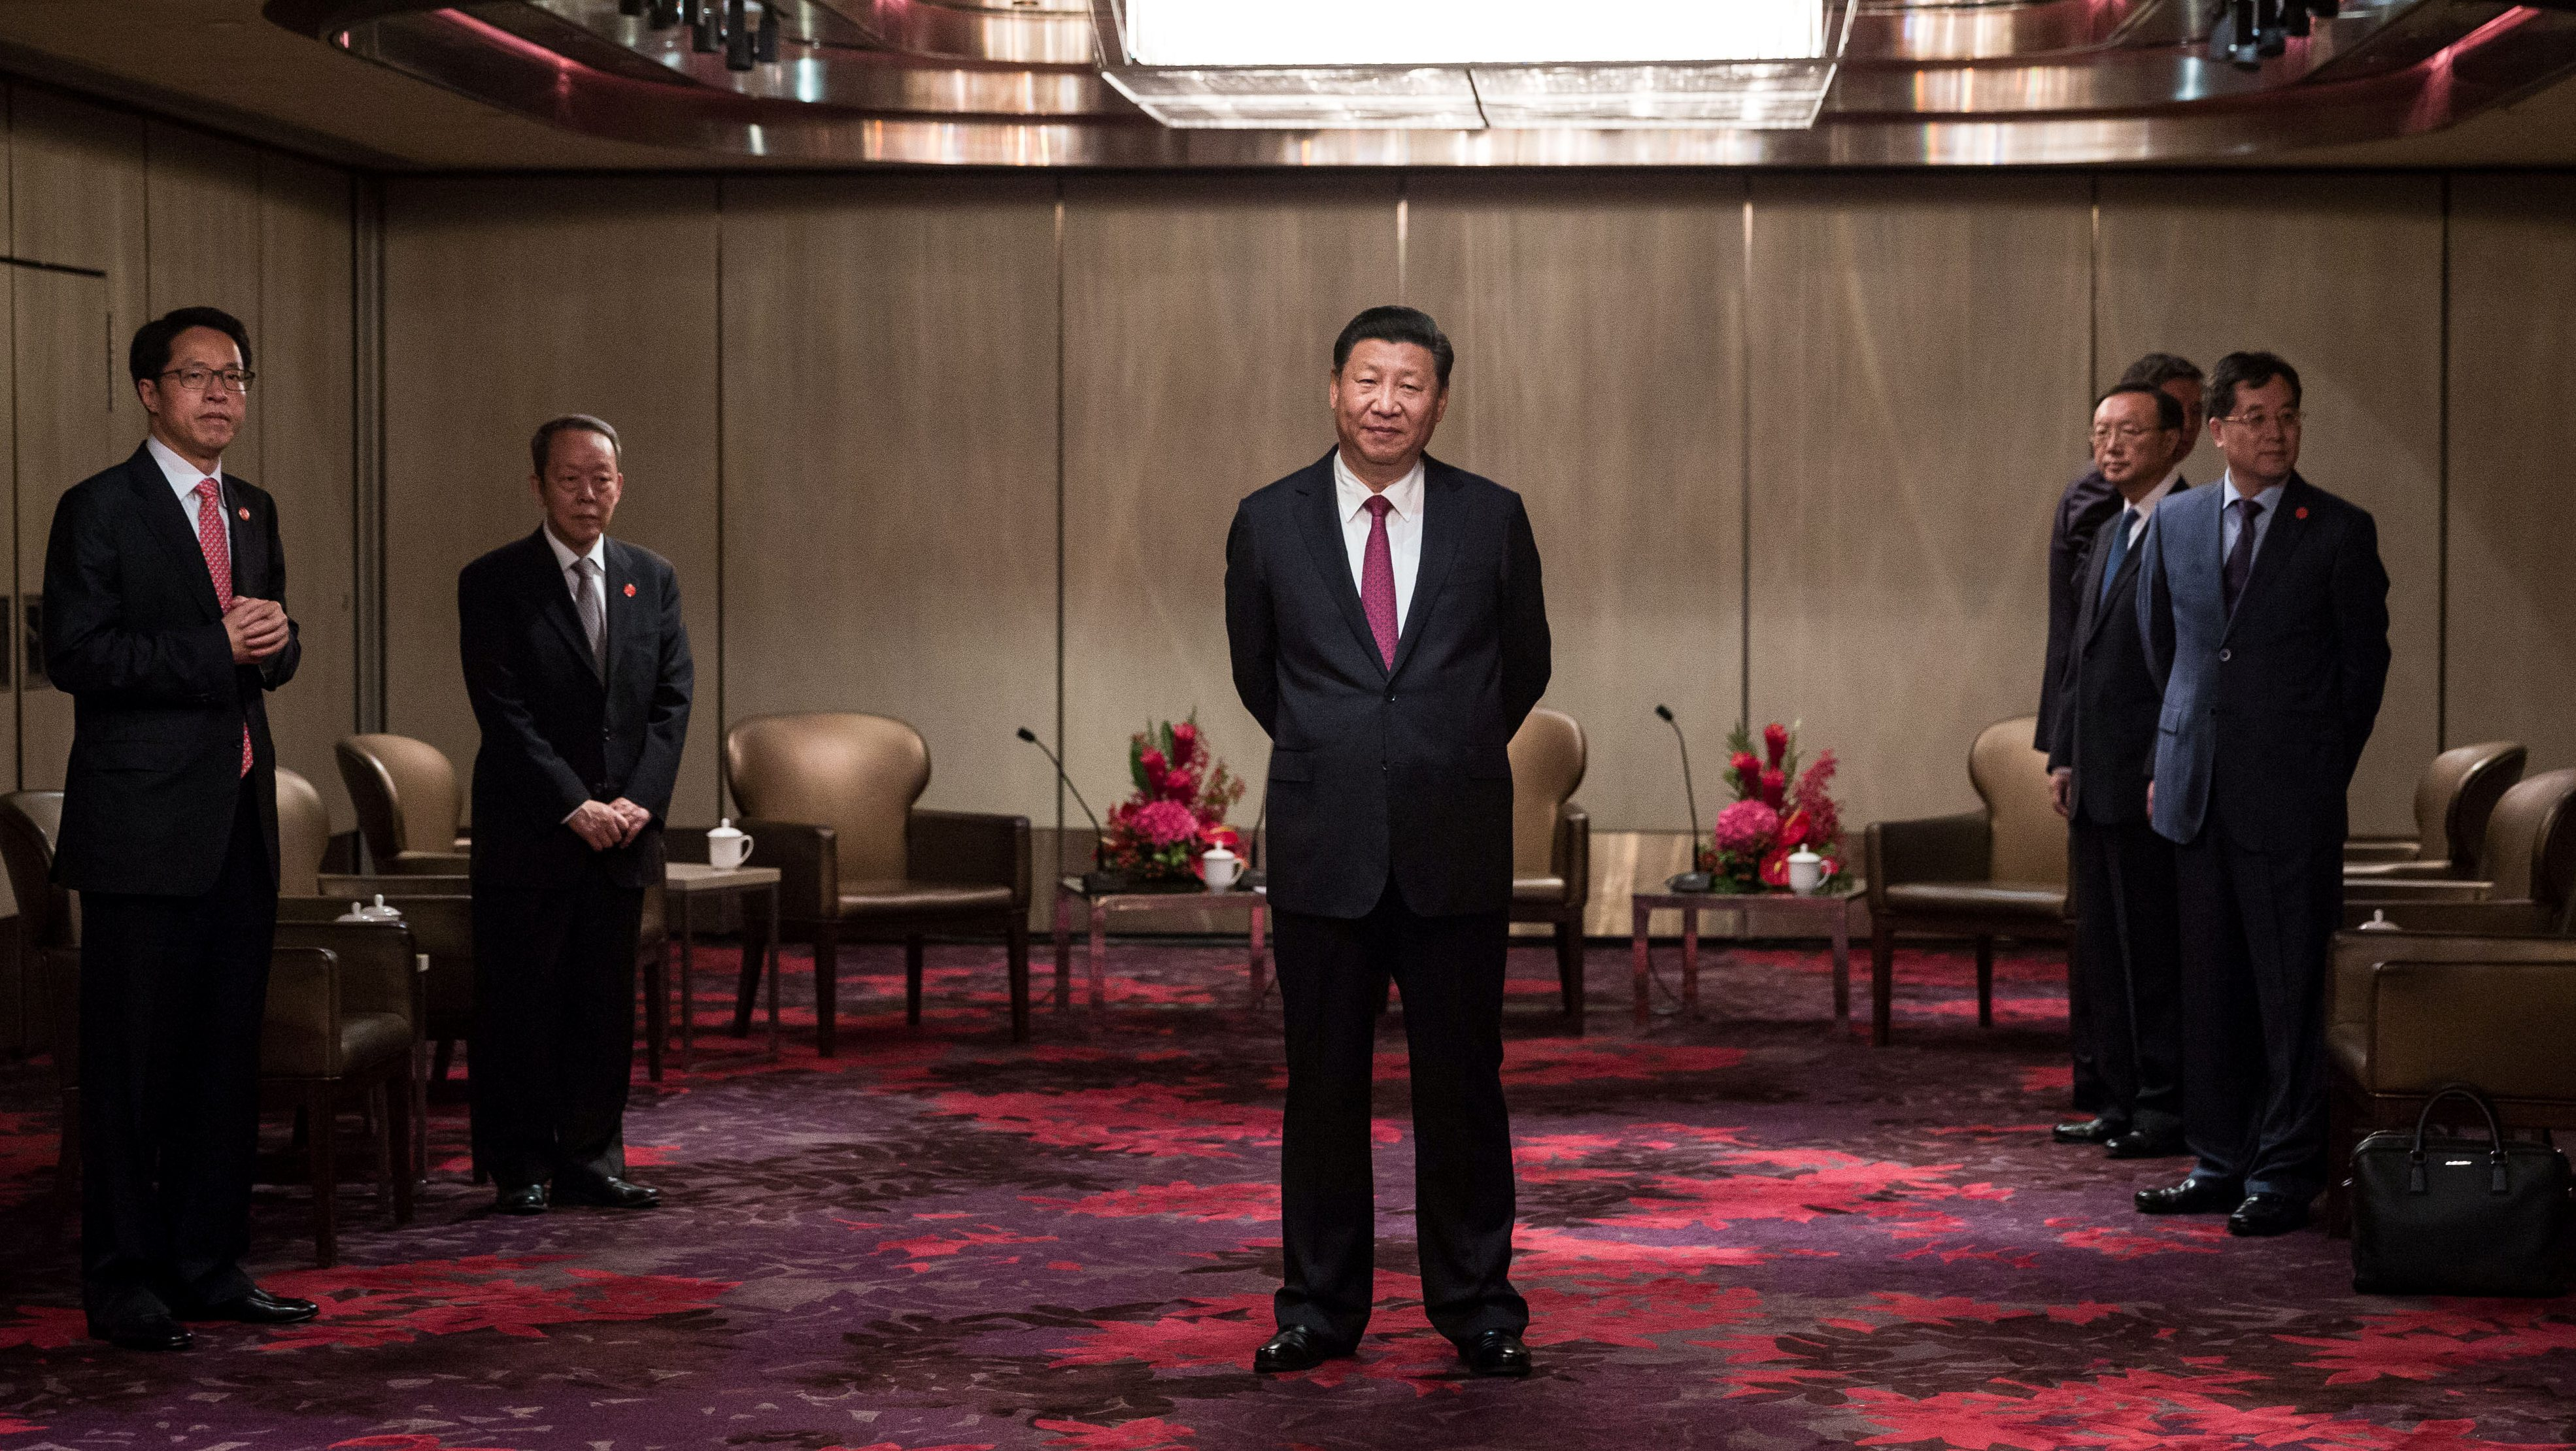 China's President Xi Jinping waits to meet with outgoing Hong Kong Chief Executive Leung Chun-ying at a hotel in Hong Kong, China, June 29, 2017. REUTERS/Dale De La Rey/Pool - RTS1927G